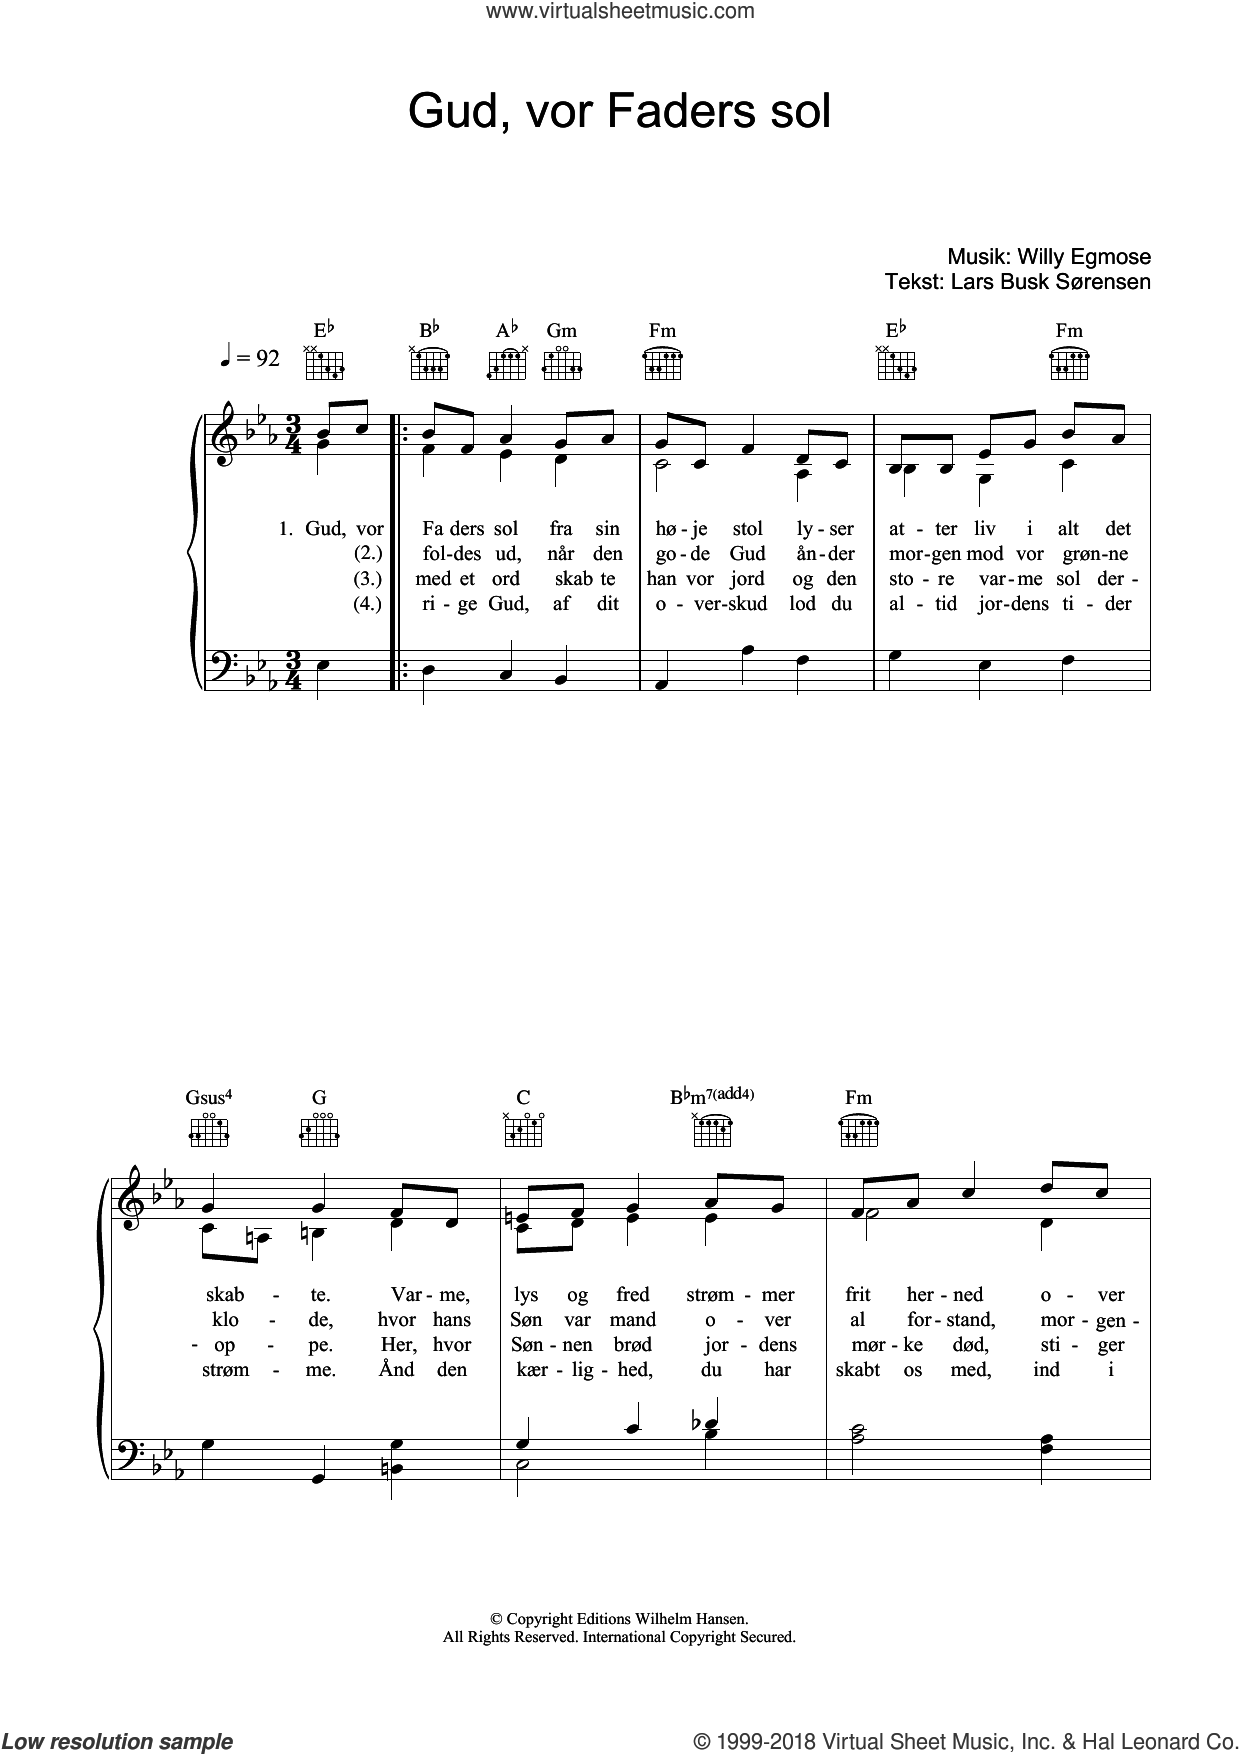 Gud, Vor Faders Sol sheet music for voice, piano or guitar by Willy Egmose and Lars Busk Sorensen, intermediate skill level